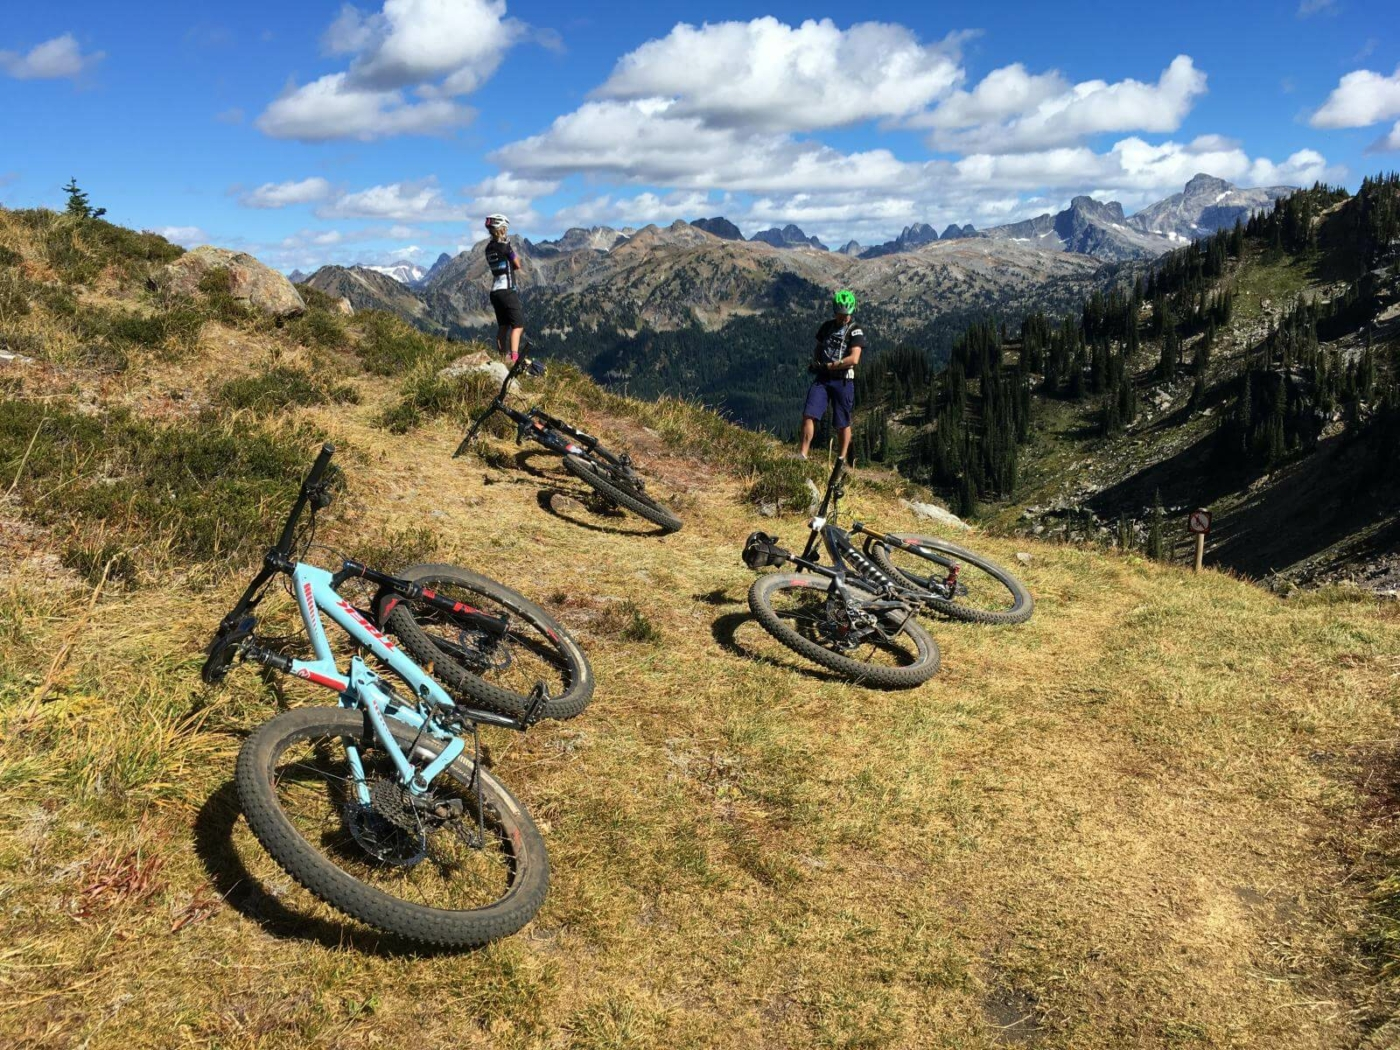 Three mountain bikes laying on the ground and two mountain bikers standing and looking out over the mountain valley